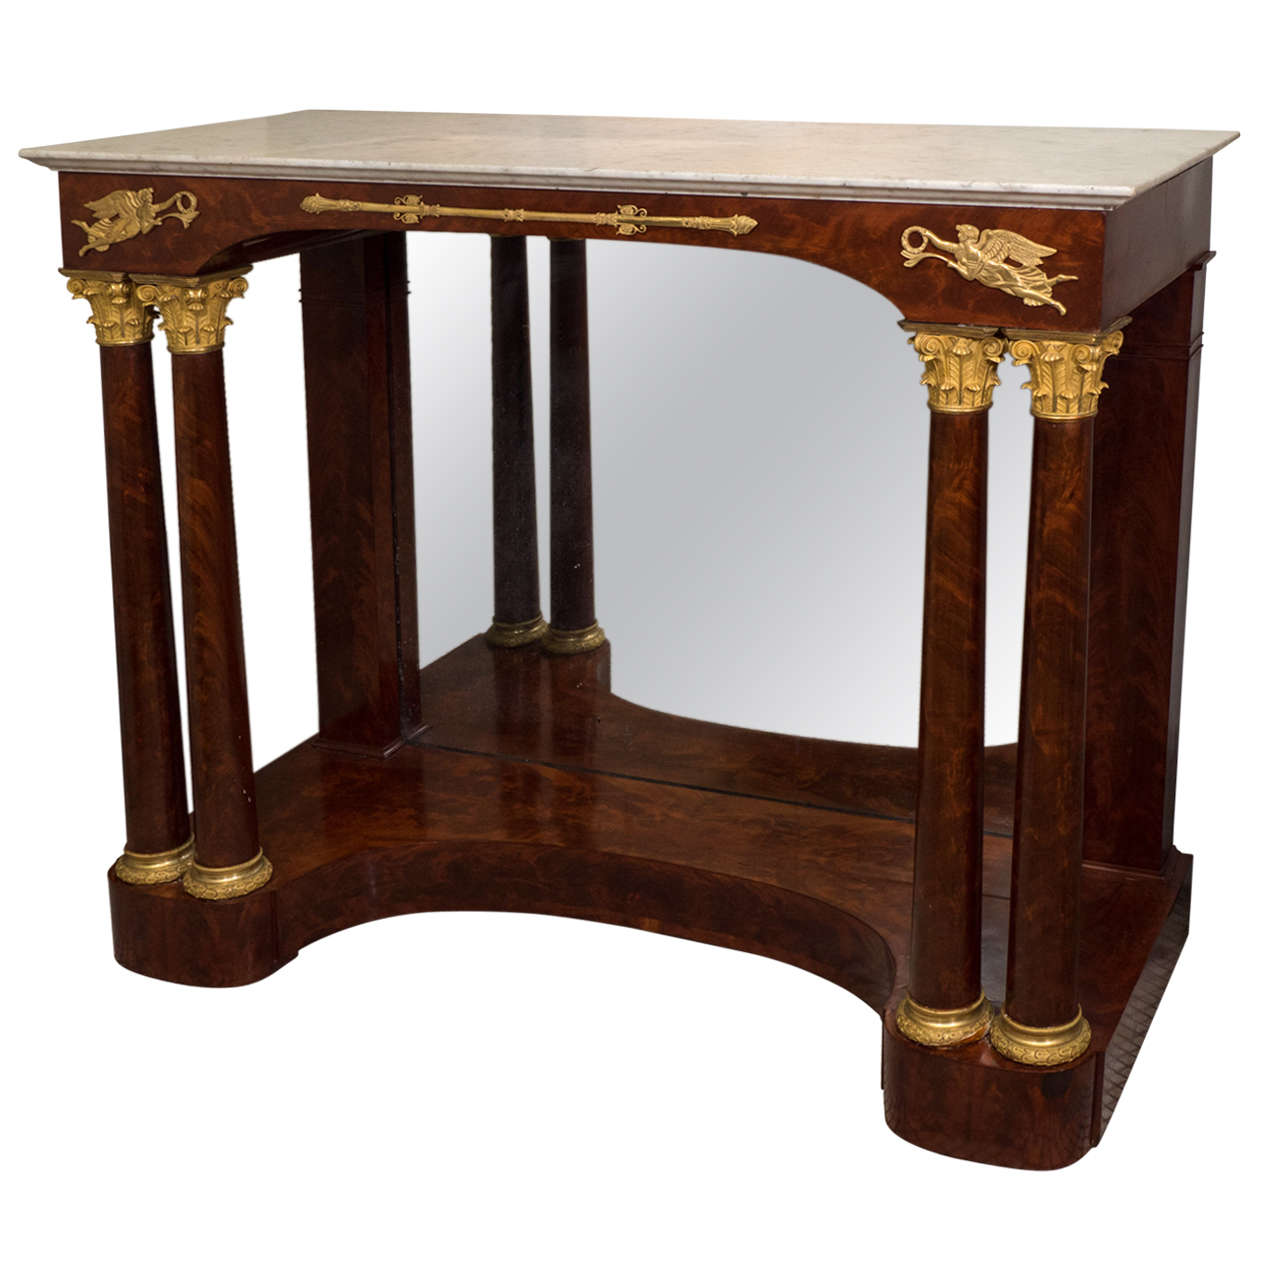 Superbe Fine French Empire Pier Table For Sale